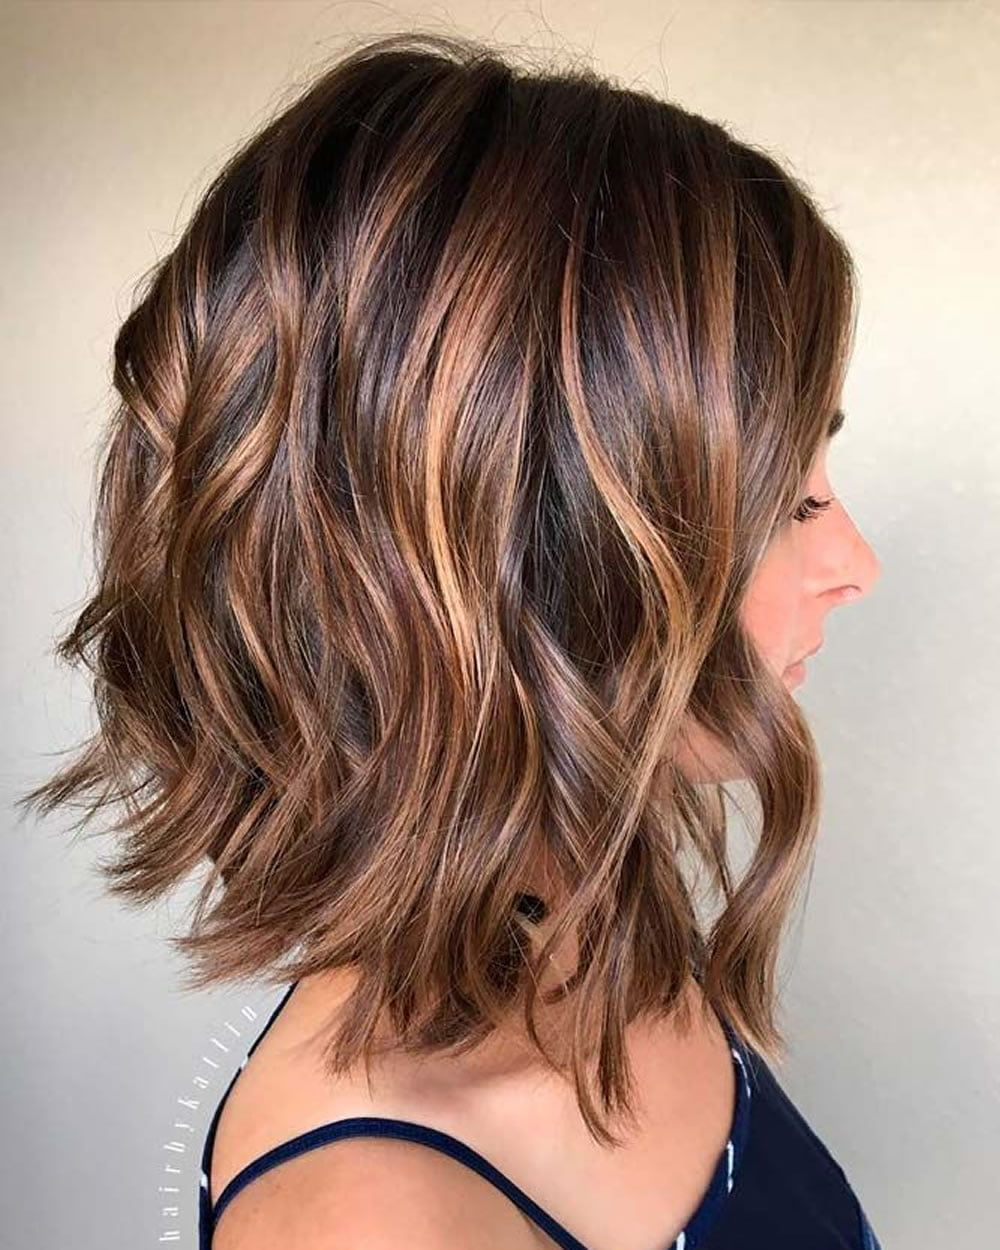 Curly  Wavy Short Hairstyles and Haircuts for Ladies 20182019  Page 2  HAIRSTYLES